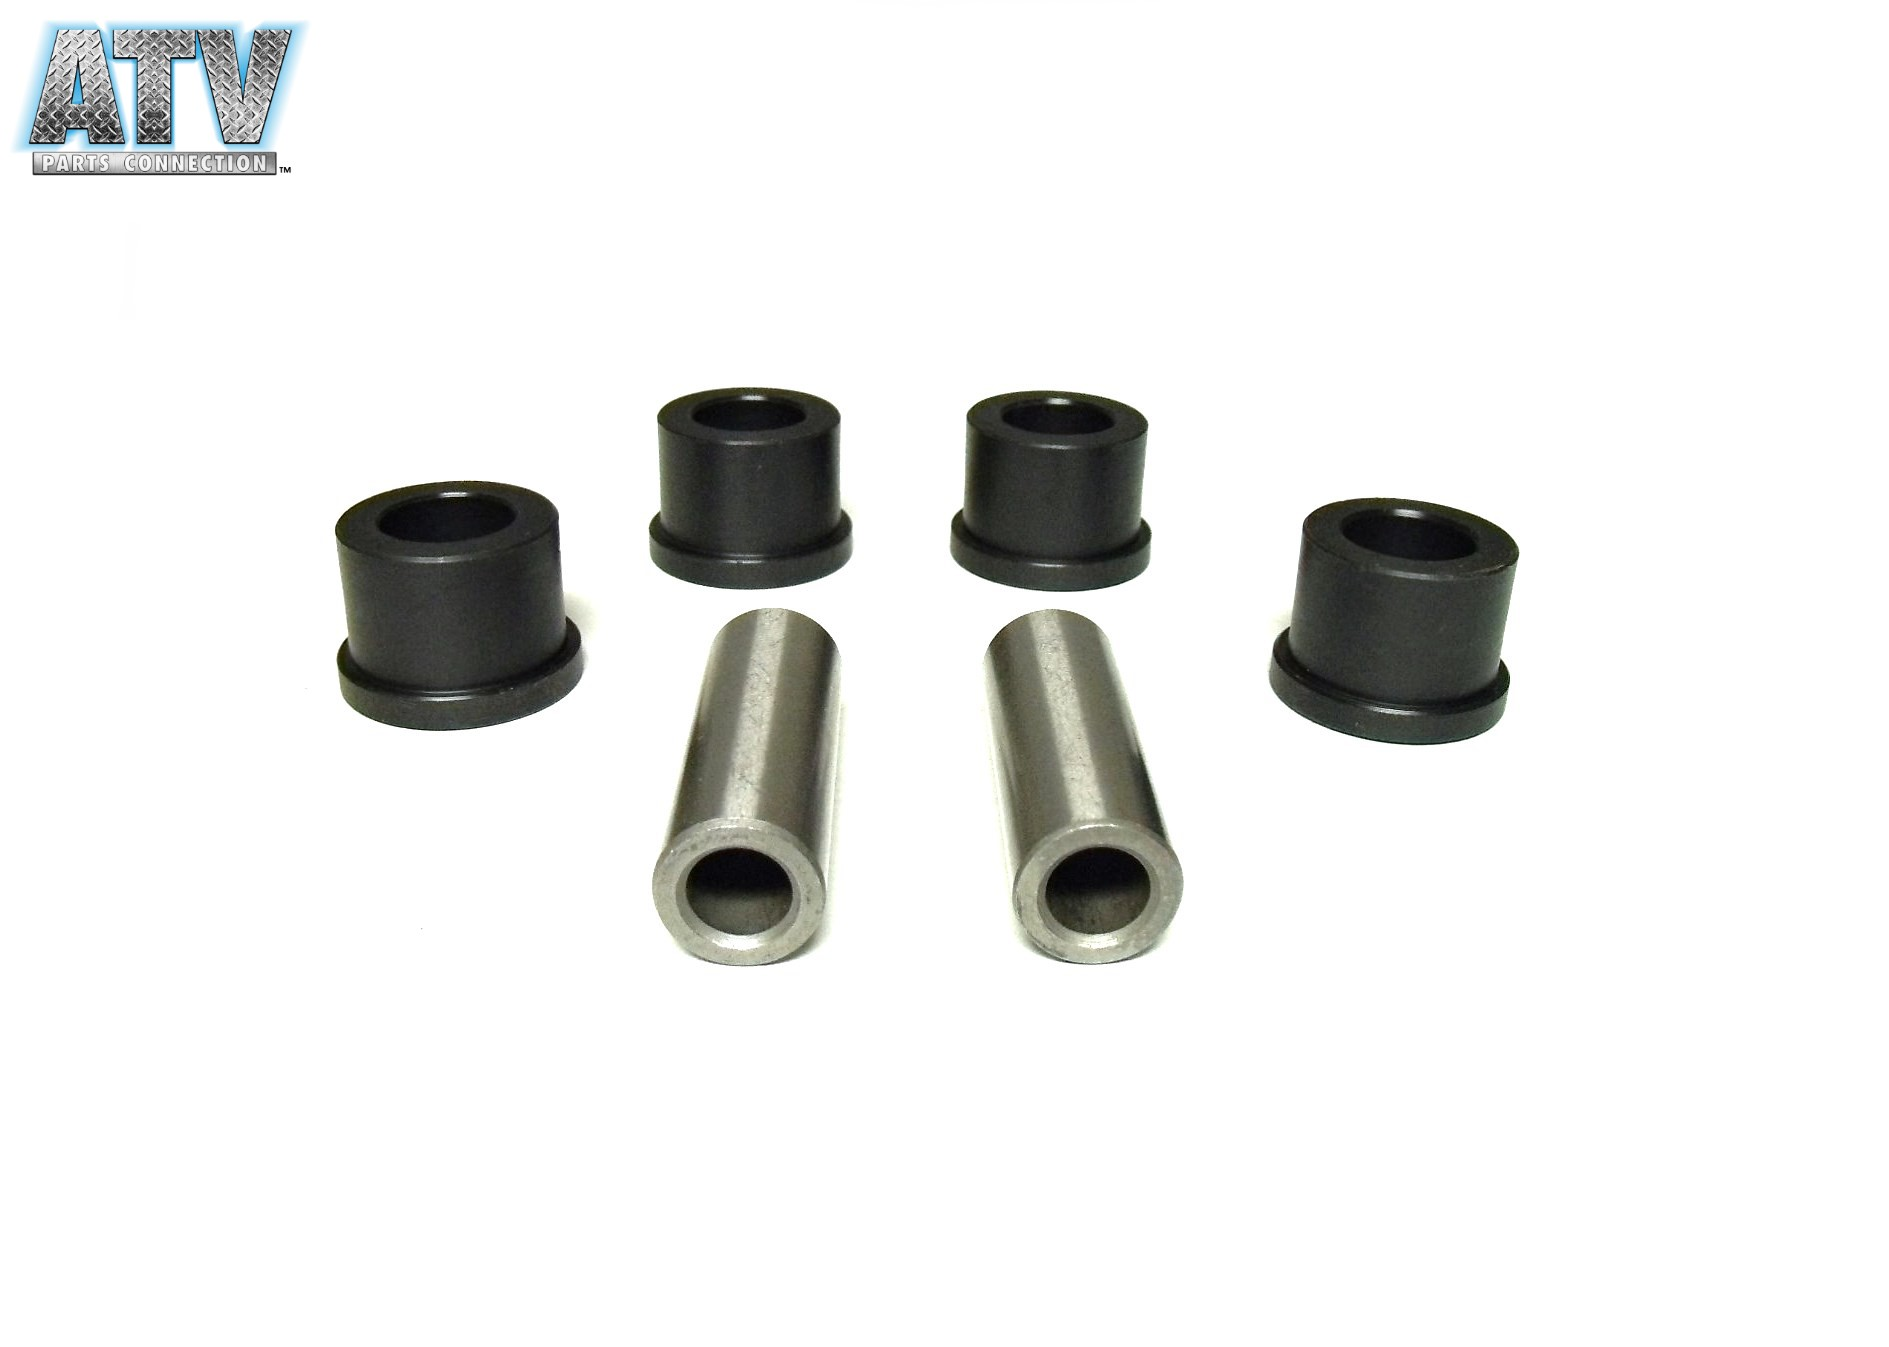 2004-2009 Honda Rubicon 500 4x4 ATV Upper A-Arm Bushing Kit